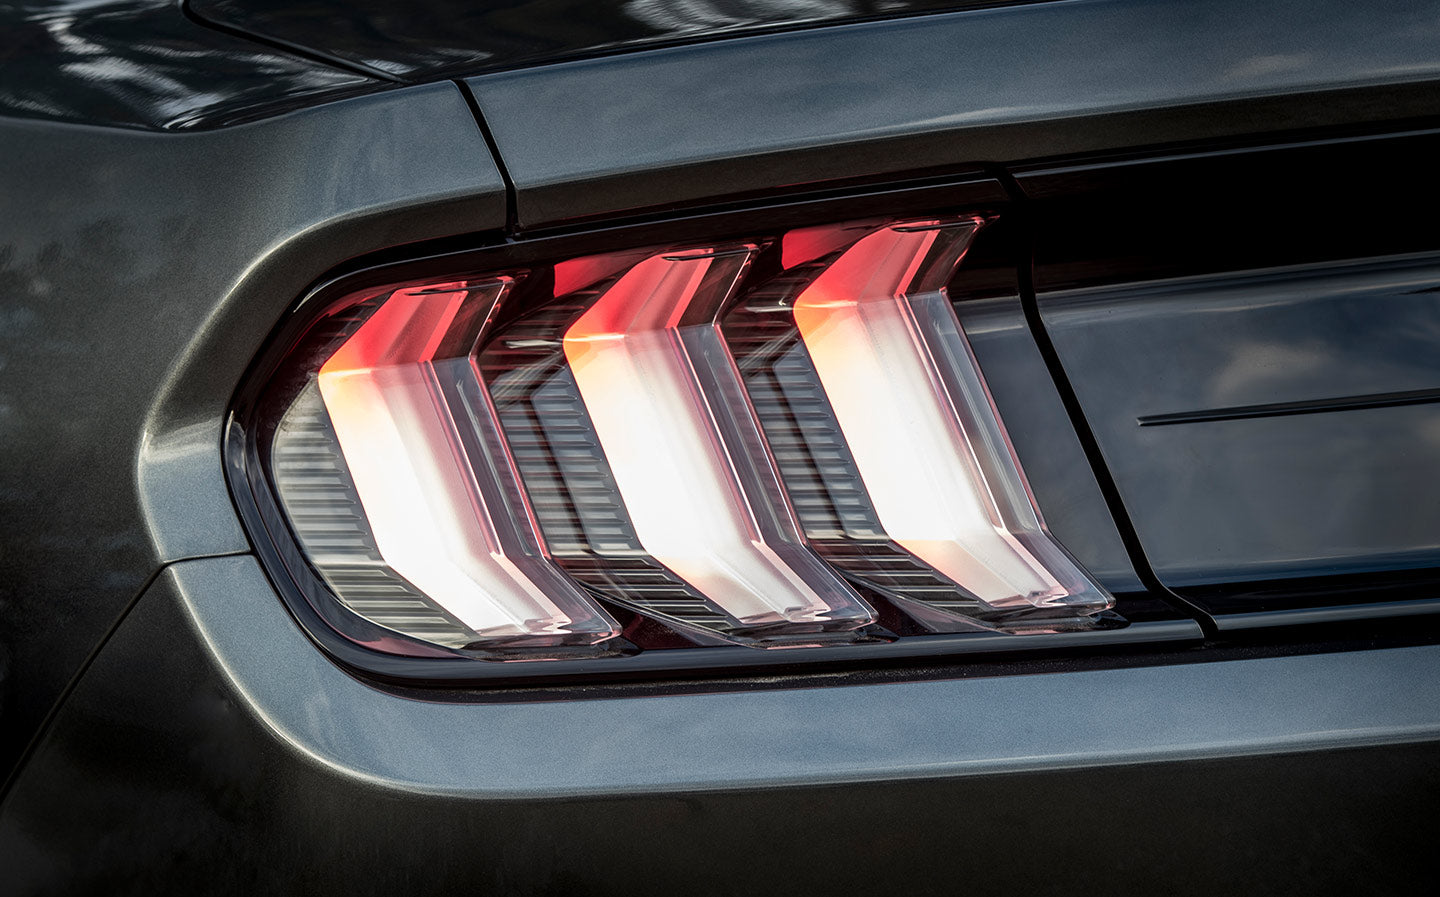 Euro Spec Tail Lights for 2015-2019 Mustangs